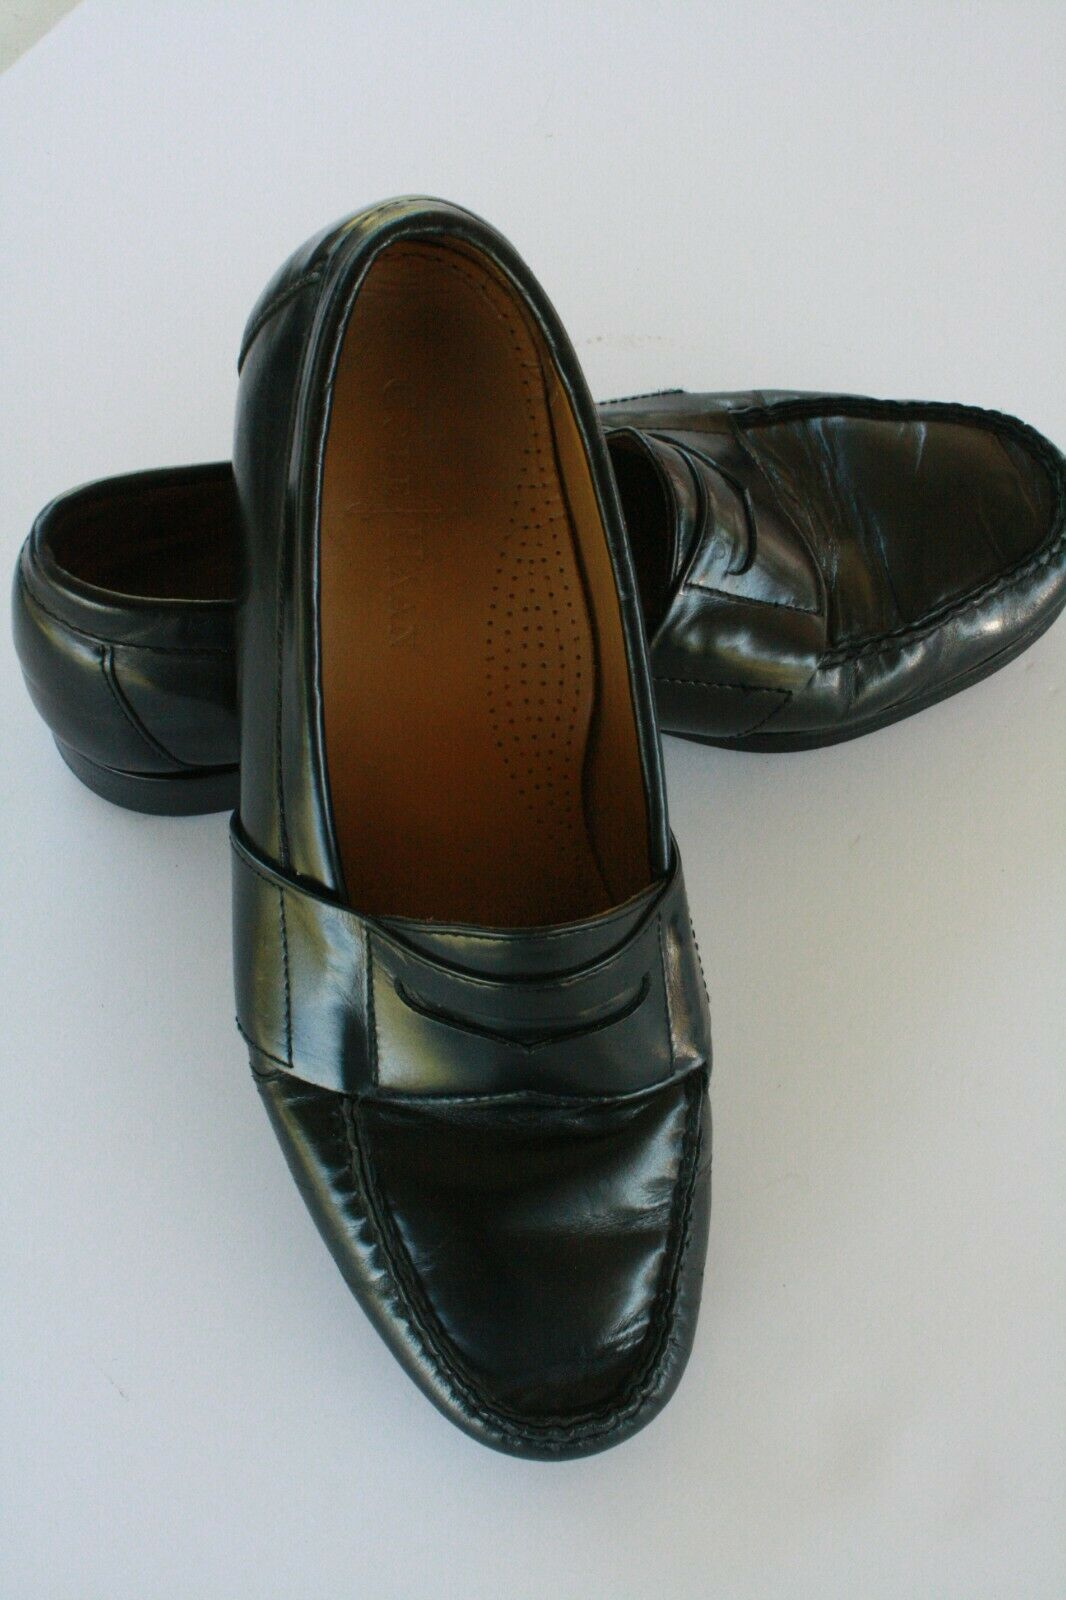 Cole Haan Men's Black Leather Slip On Casual Penny Loafers Size 8.5 M EUC image 4